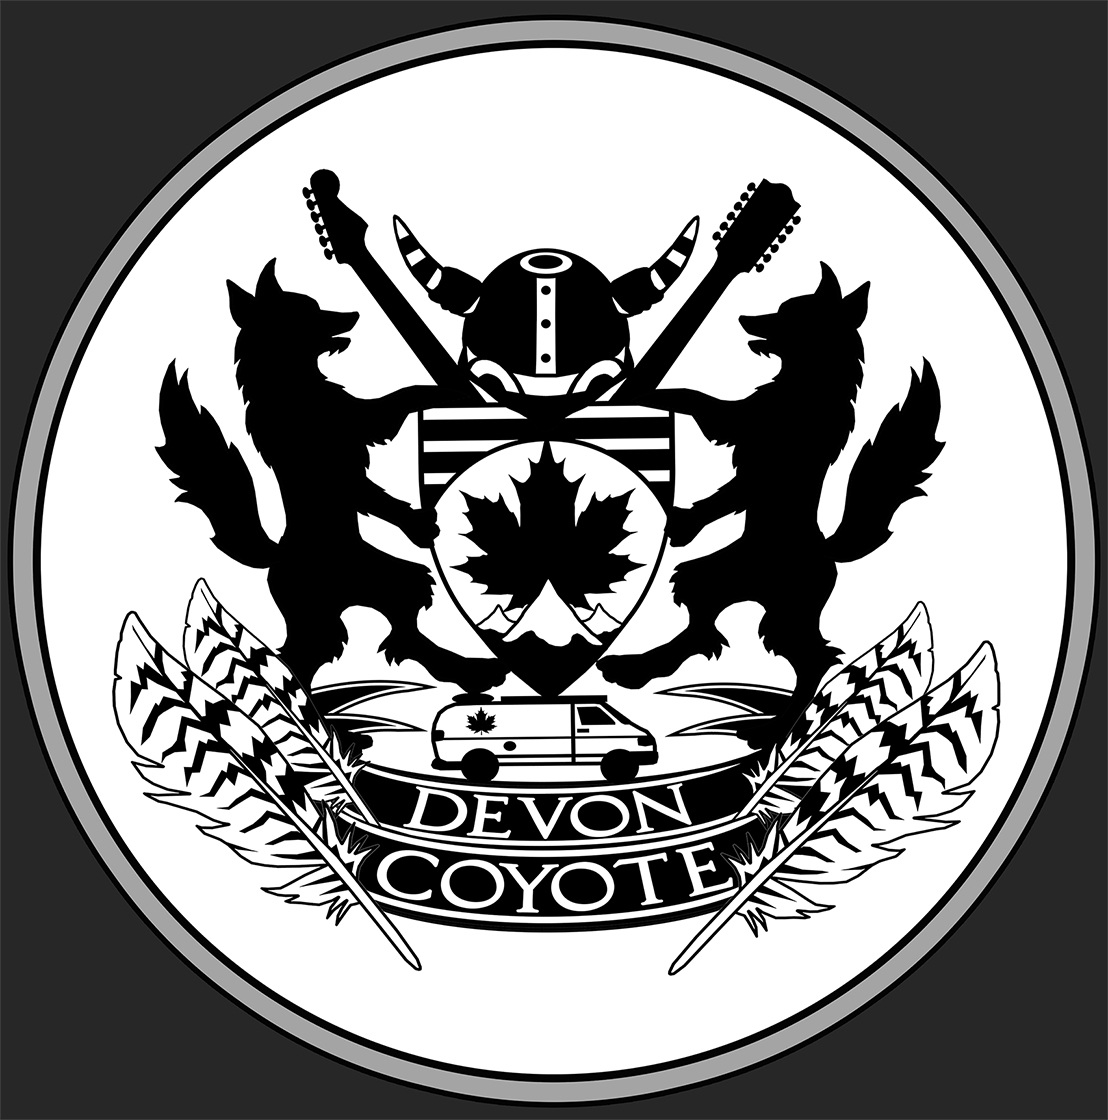 Devon Coyote Coat of Arms.jpg